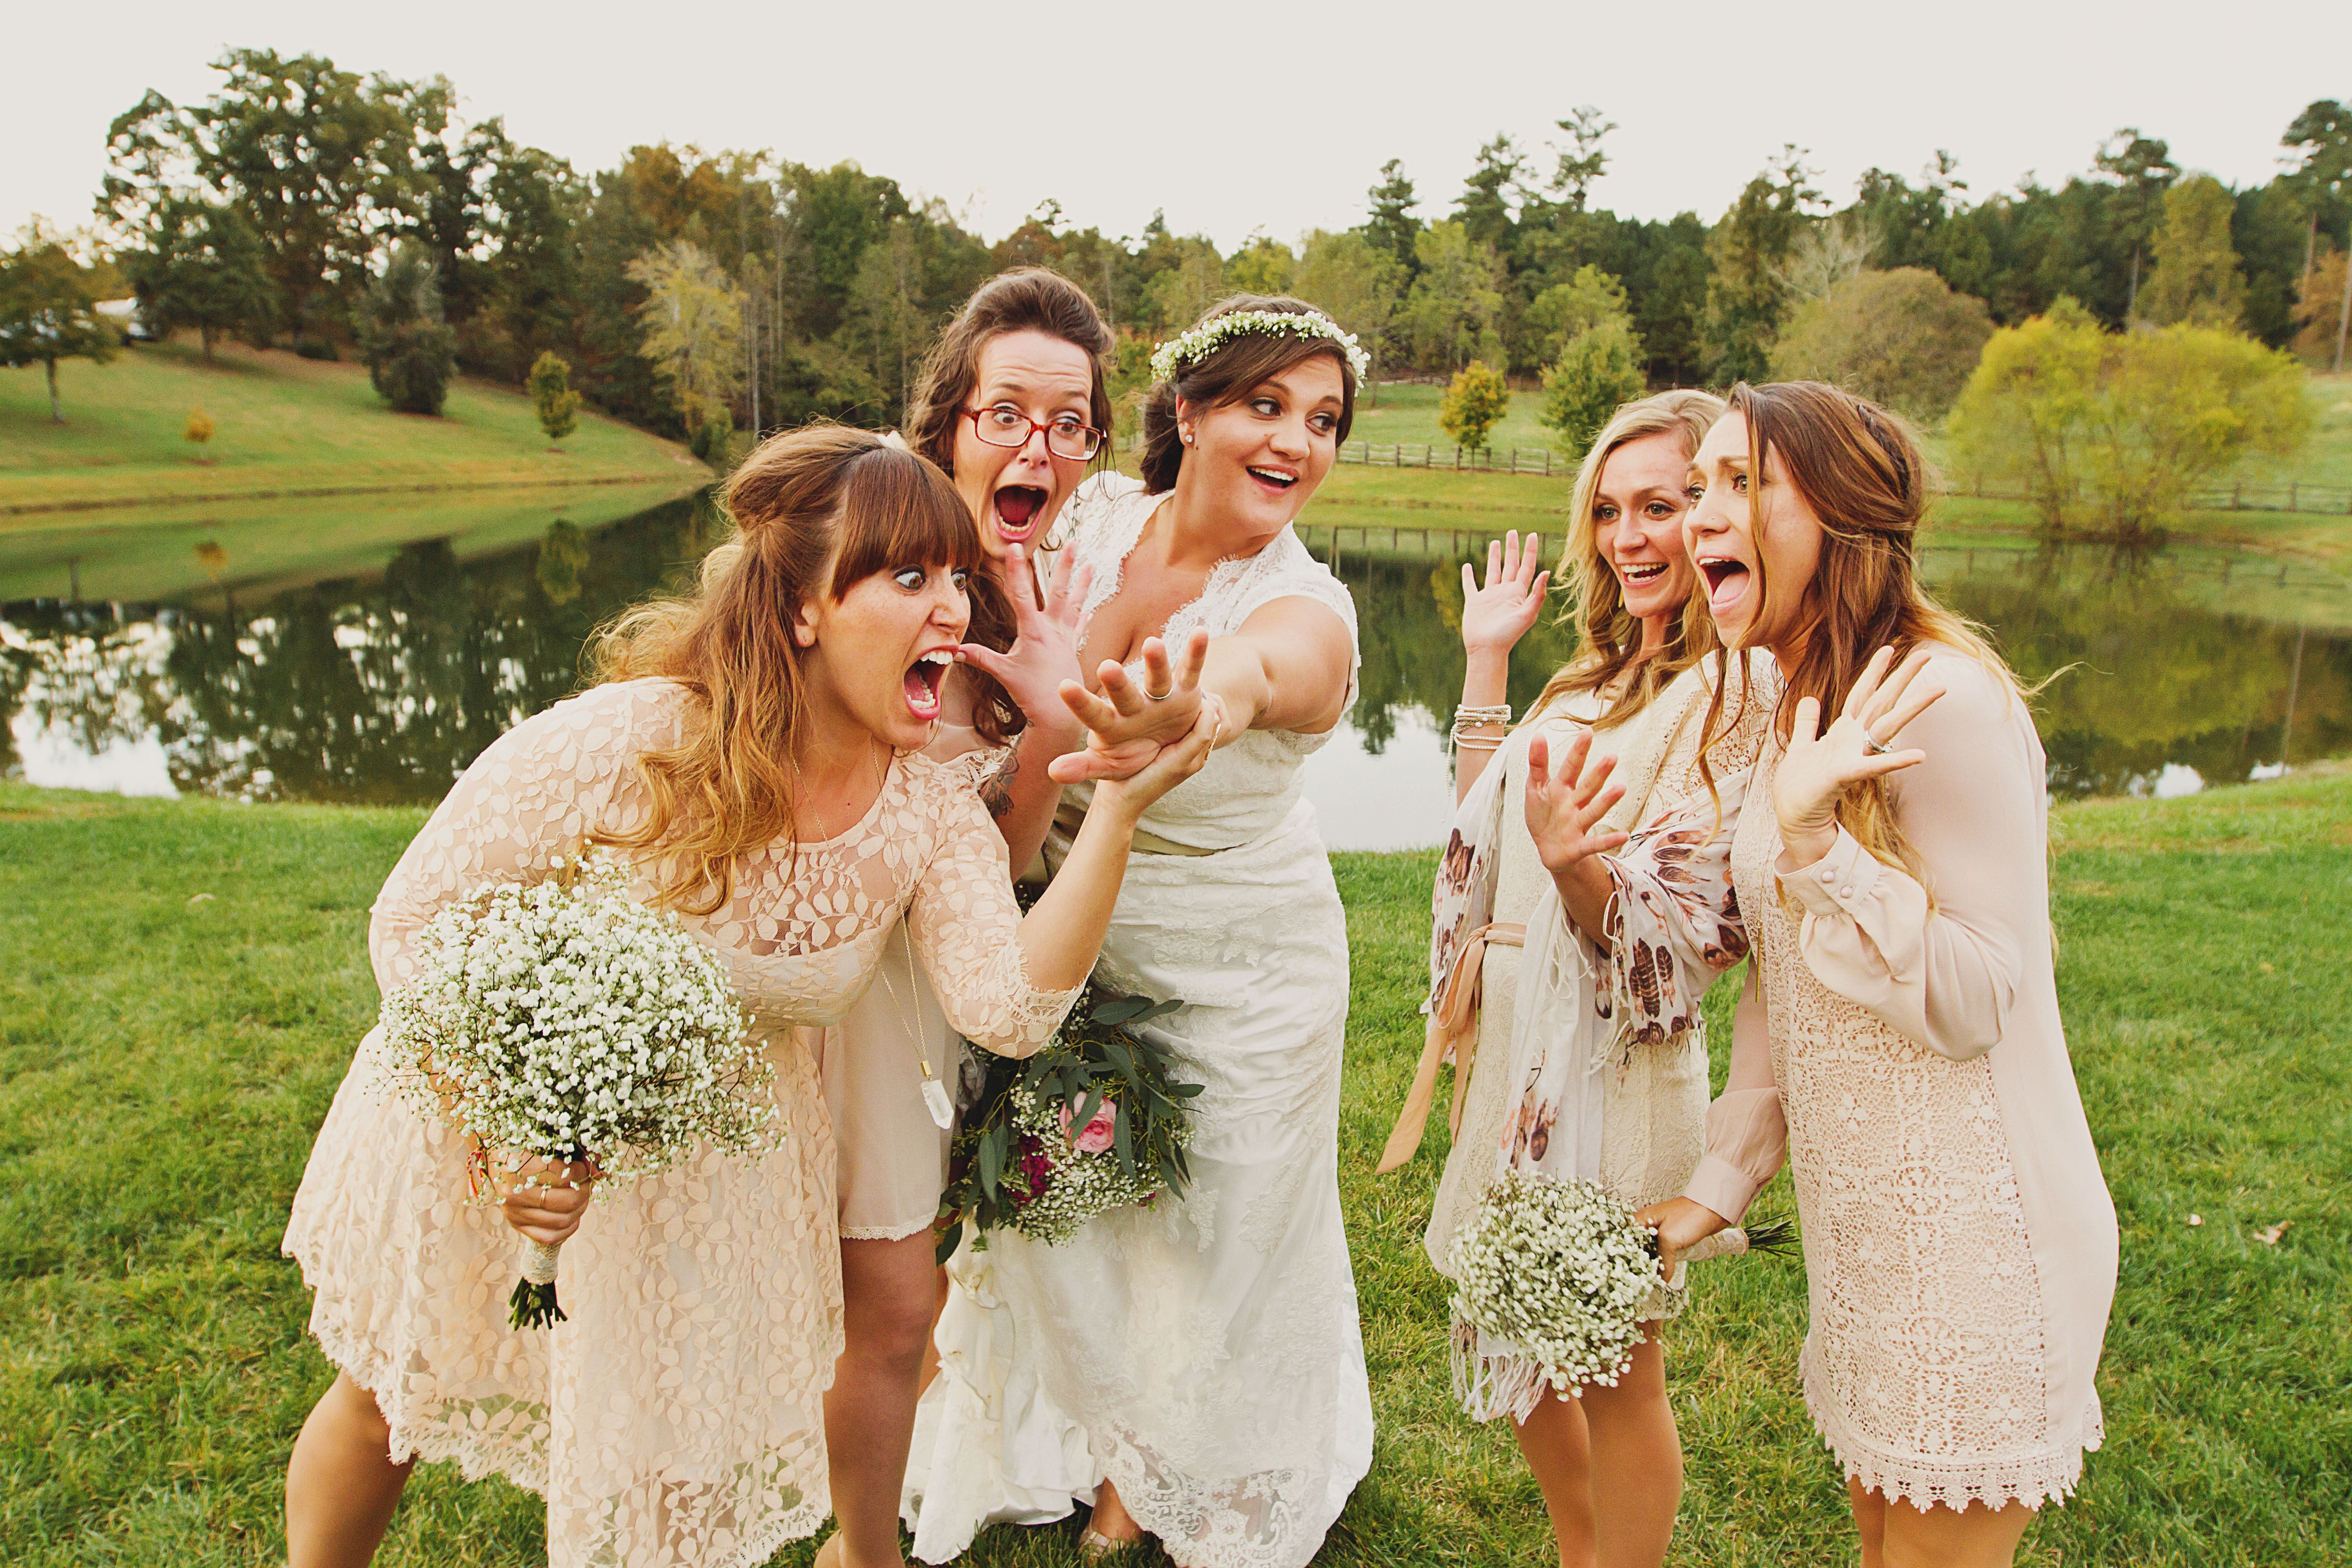 Funny bridesmaid photo love my girls t t wedding pinterest funny bridesmaid photo love my girls ombrellifo Choice Image